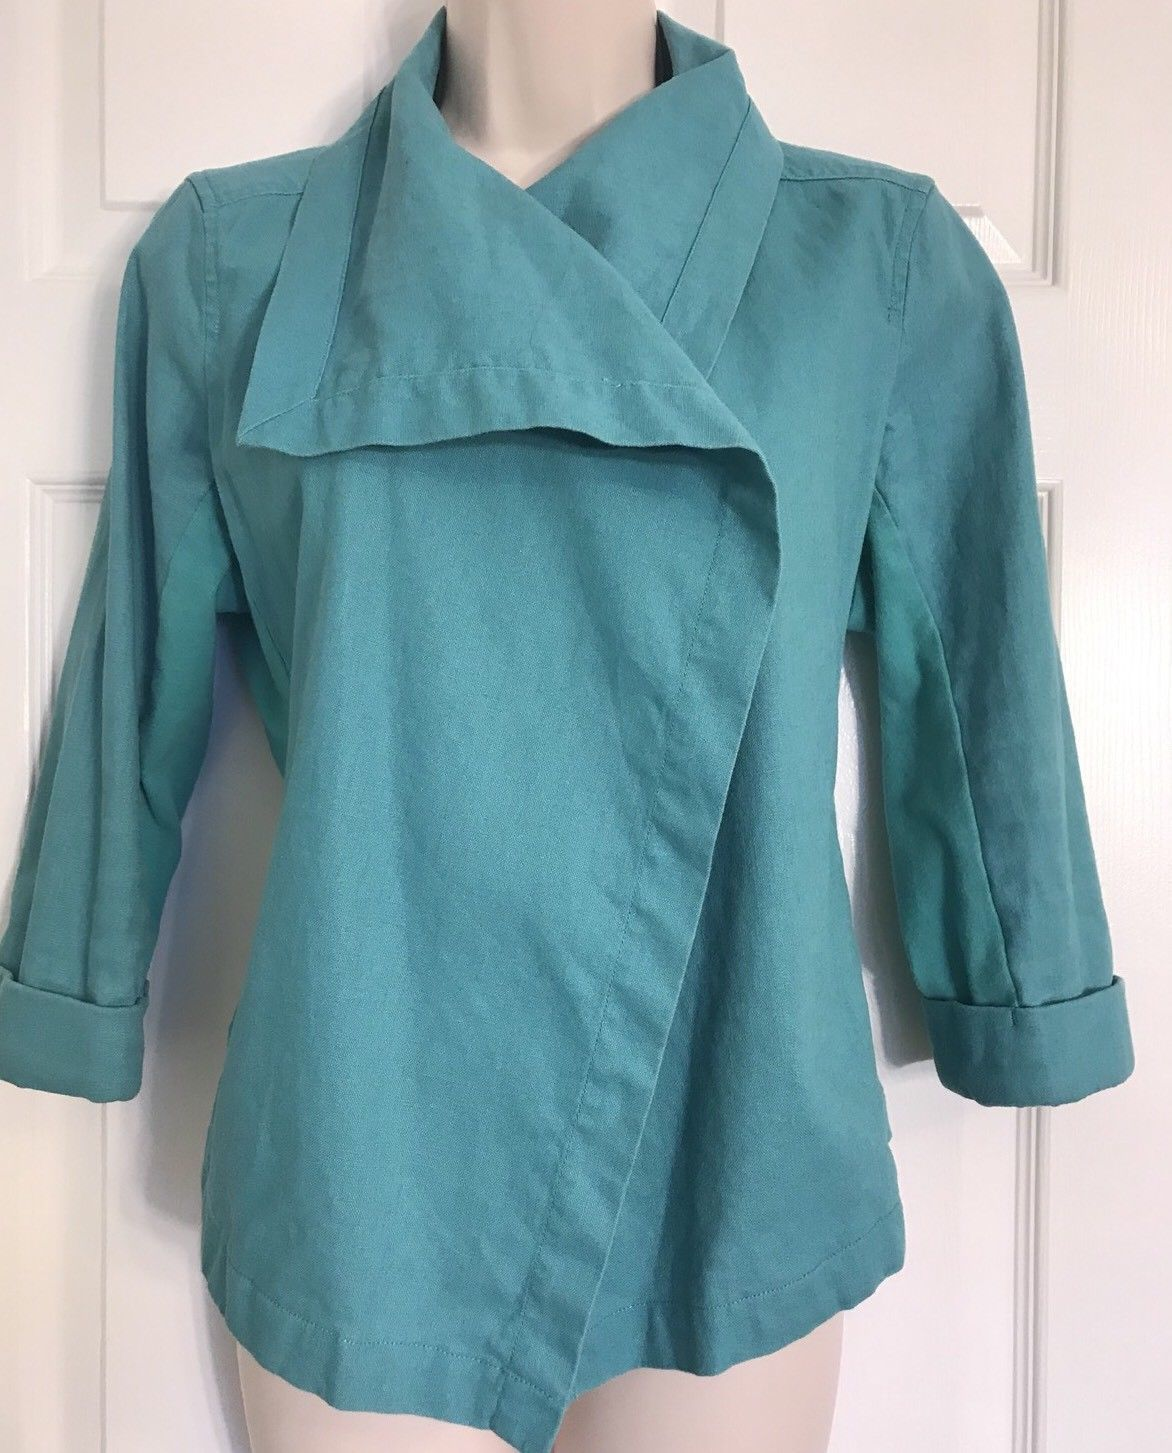 Lucy Activewear Linen Blend Small Open Cardigan Jacket Teal Green Wrap Flyaway